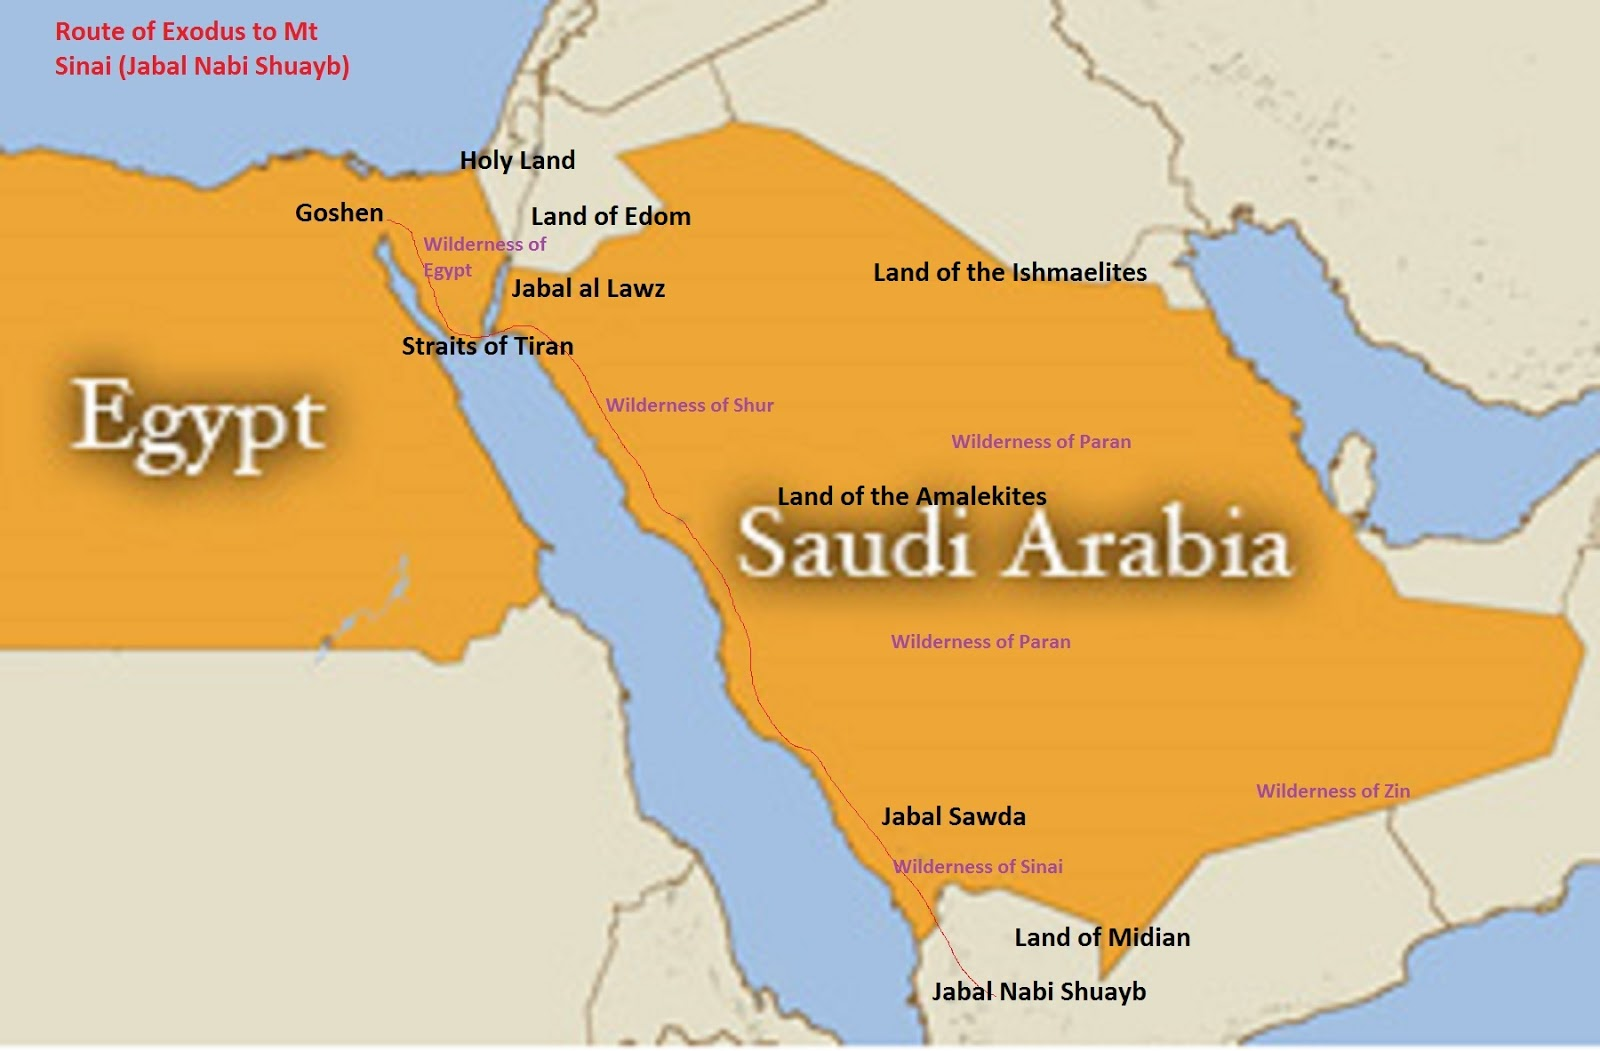 alternative genhist where was mt sinai? jabal nabi shuayb? Egypt Saudi Arabia Map Egypt Saudi Arabia Map #9 egypt saudi arabia bridge